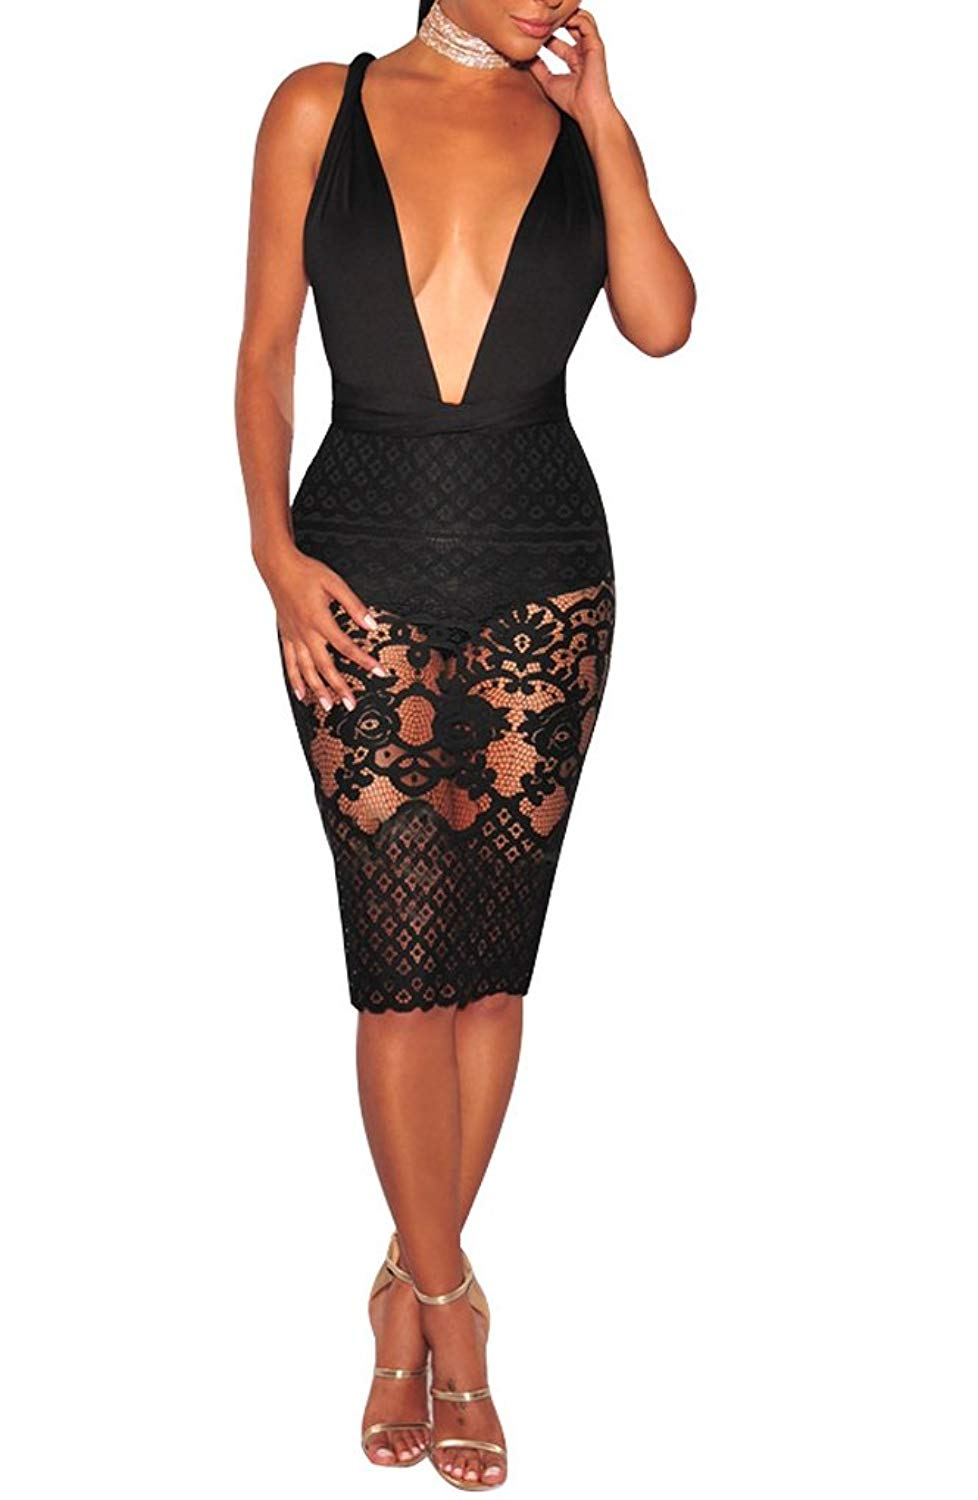 91aded7b3120 Get Quotations · sexycherry Women Boho Bodycon Sexy Lace Floral Halter  Strap Deep V Neck Evening Club Mini Dress